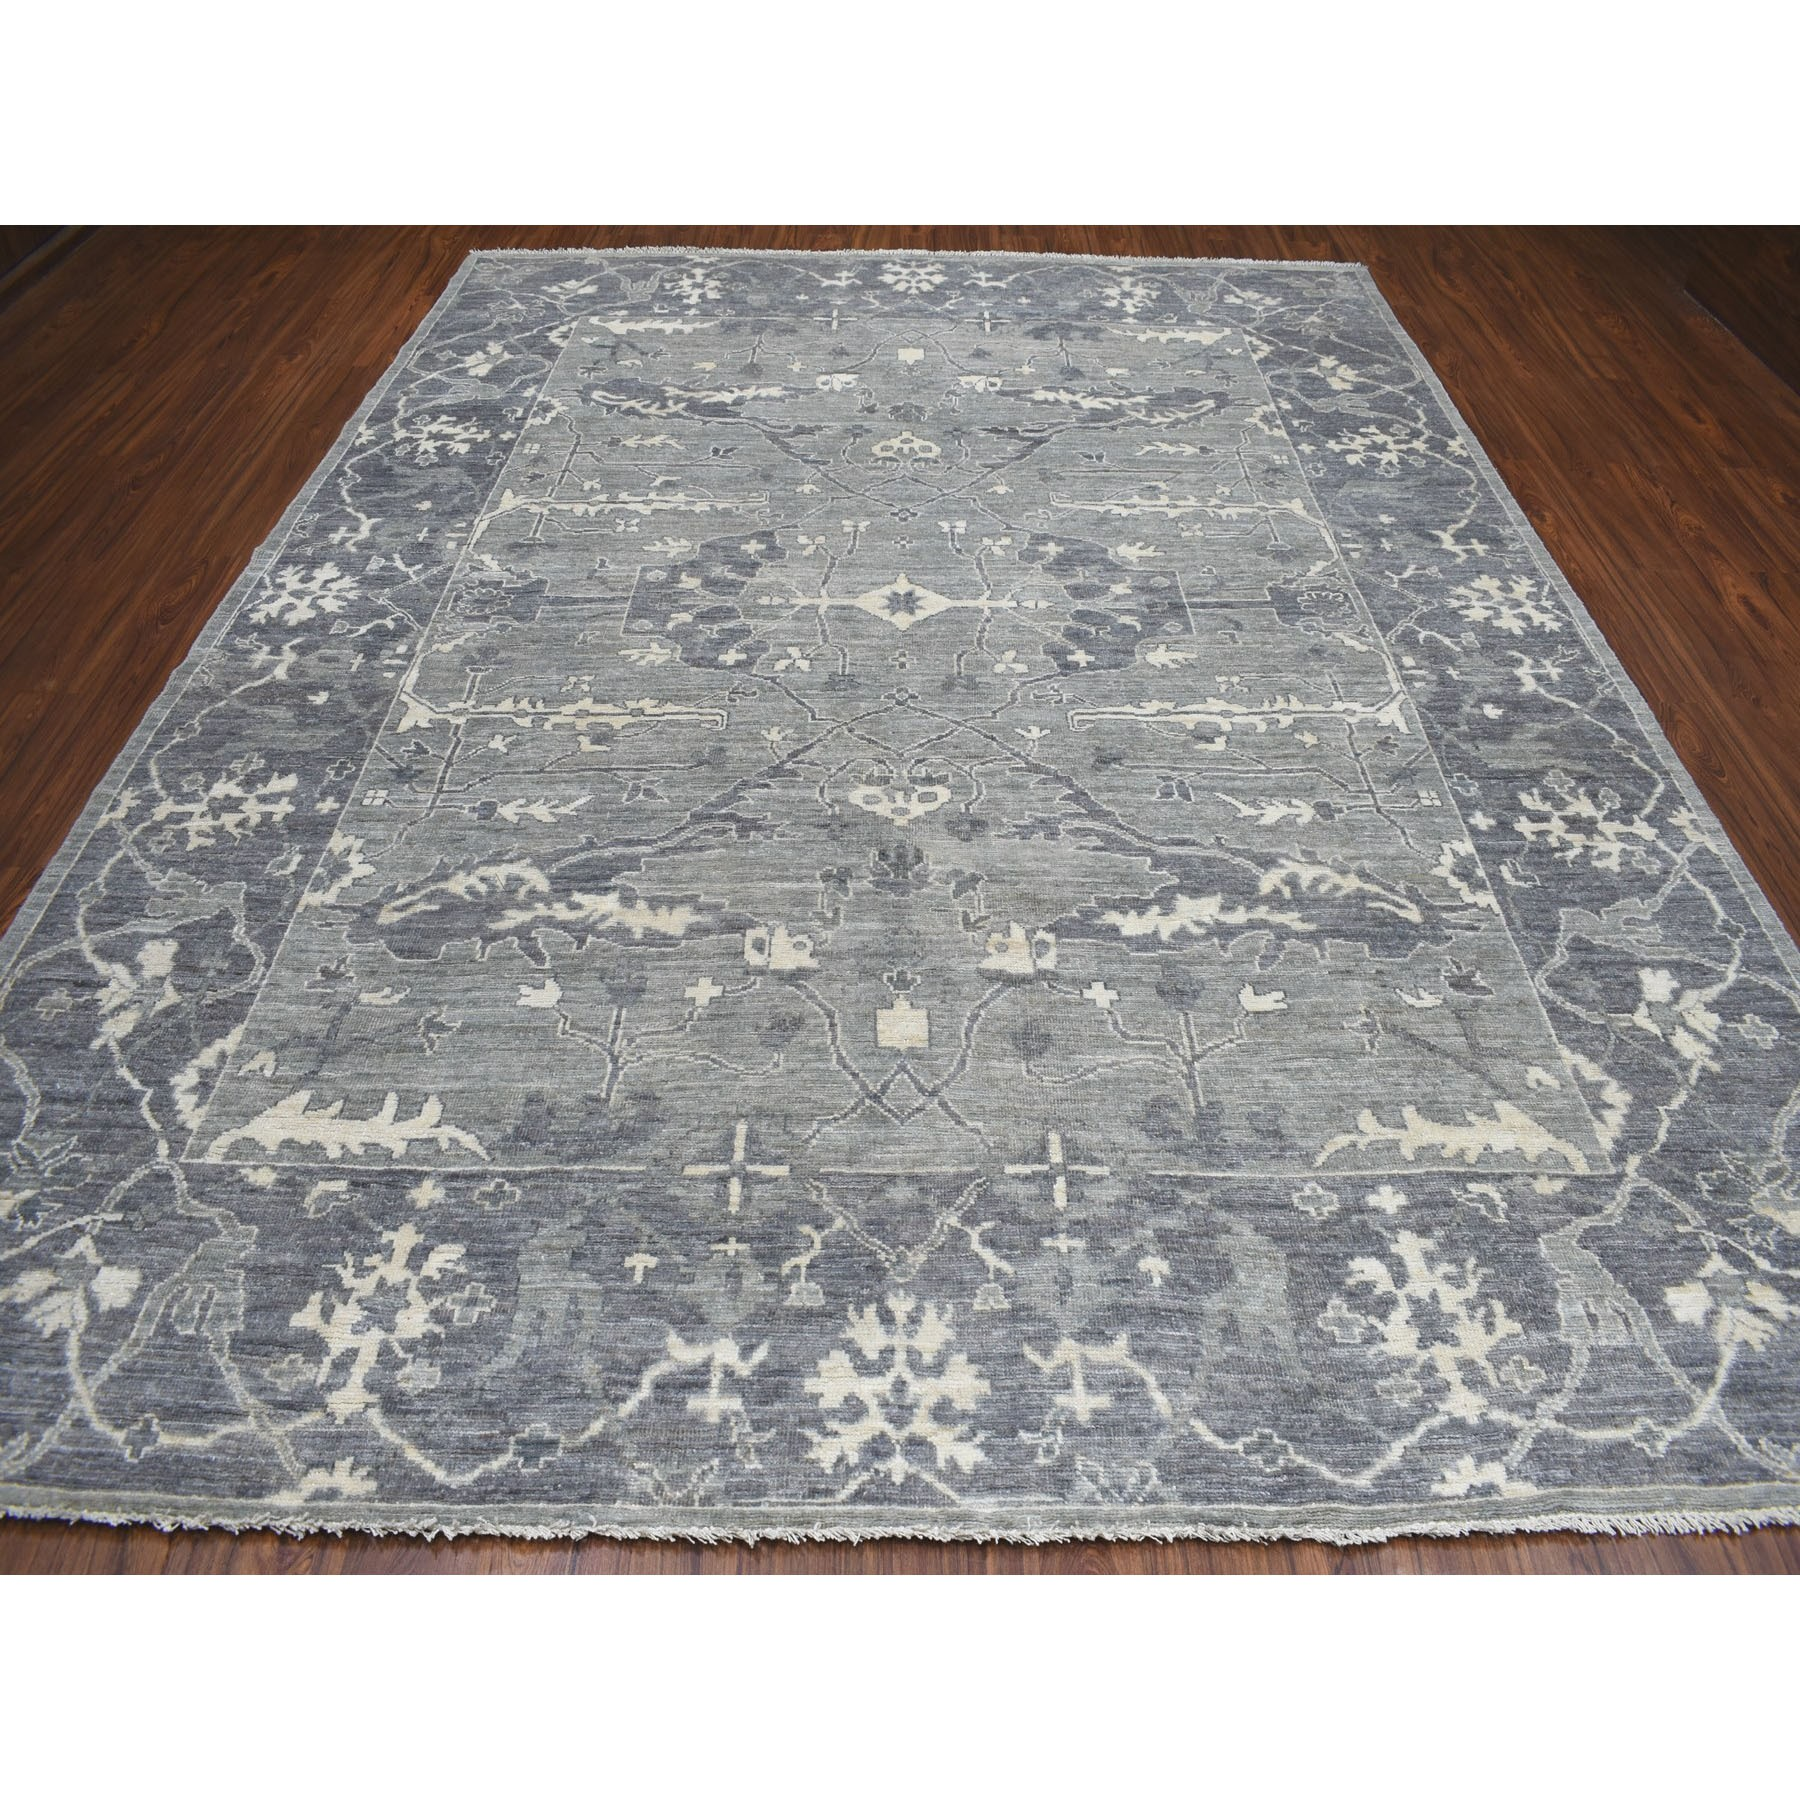 "9'x11'7"" Gray Angora Oushak Pure Wool Hand Knotted Oriental Rug"